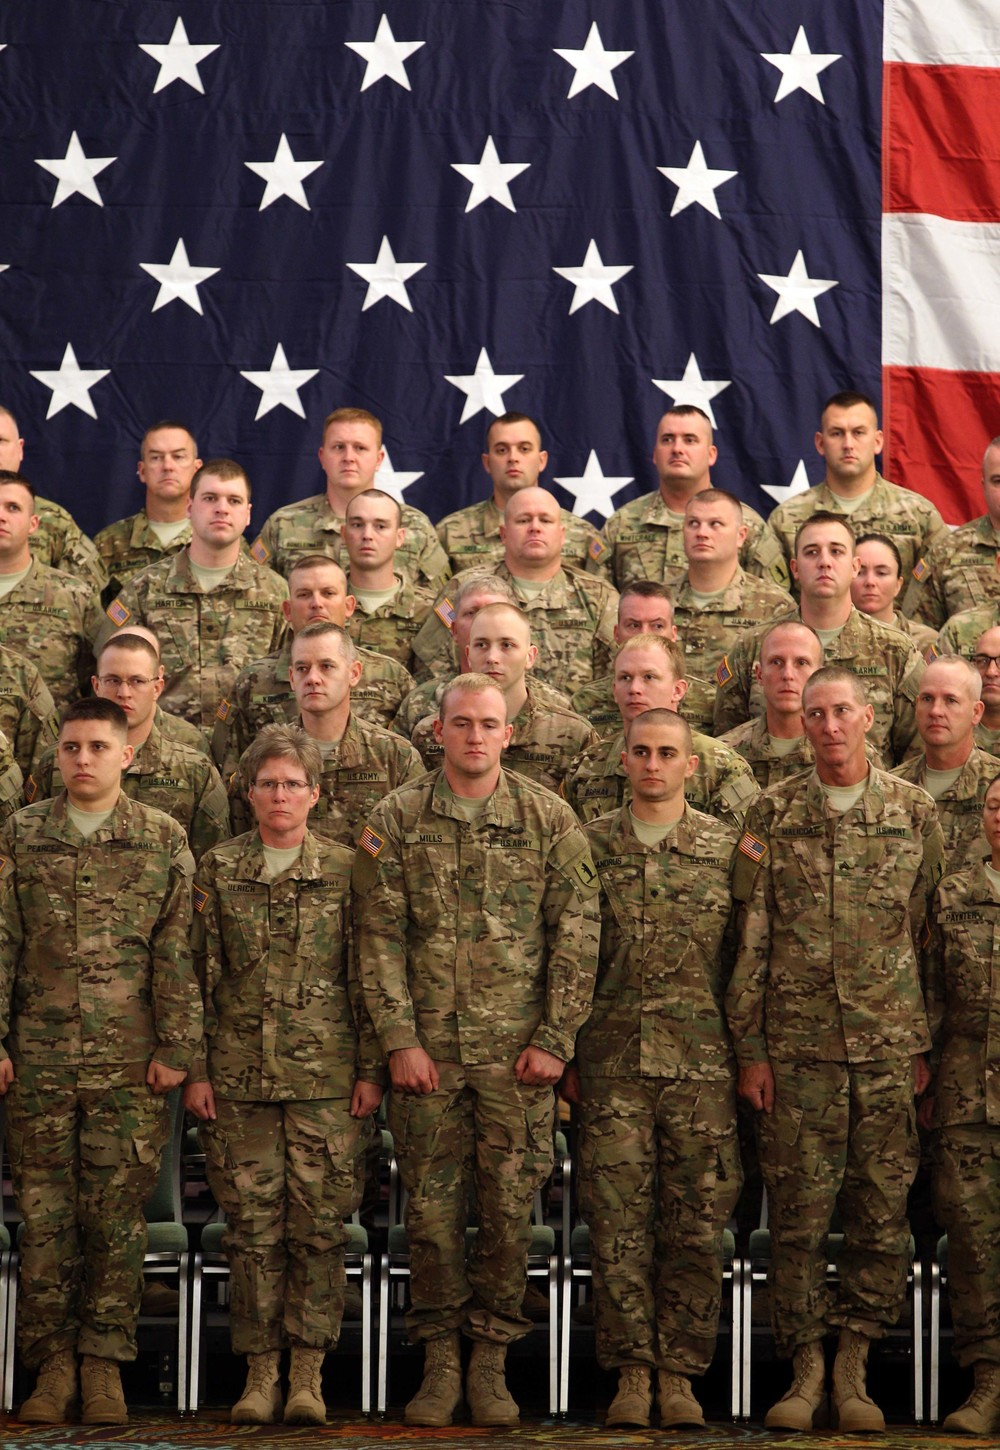 Troops ready to delpoy to the Middle East